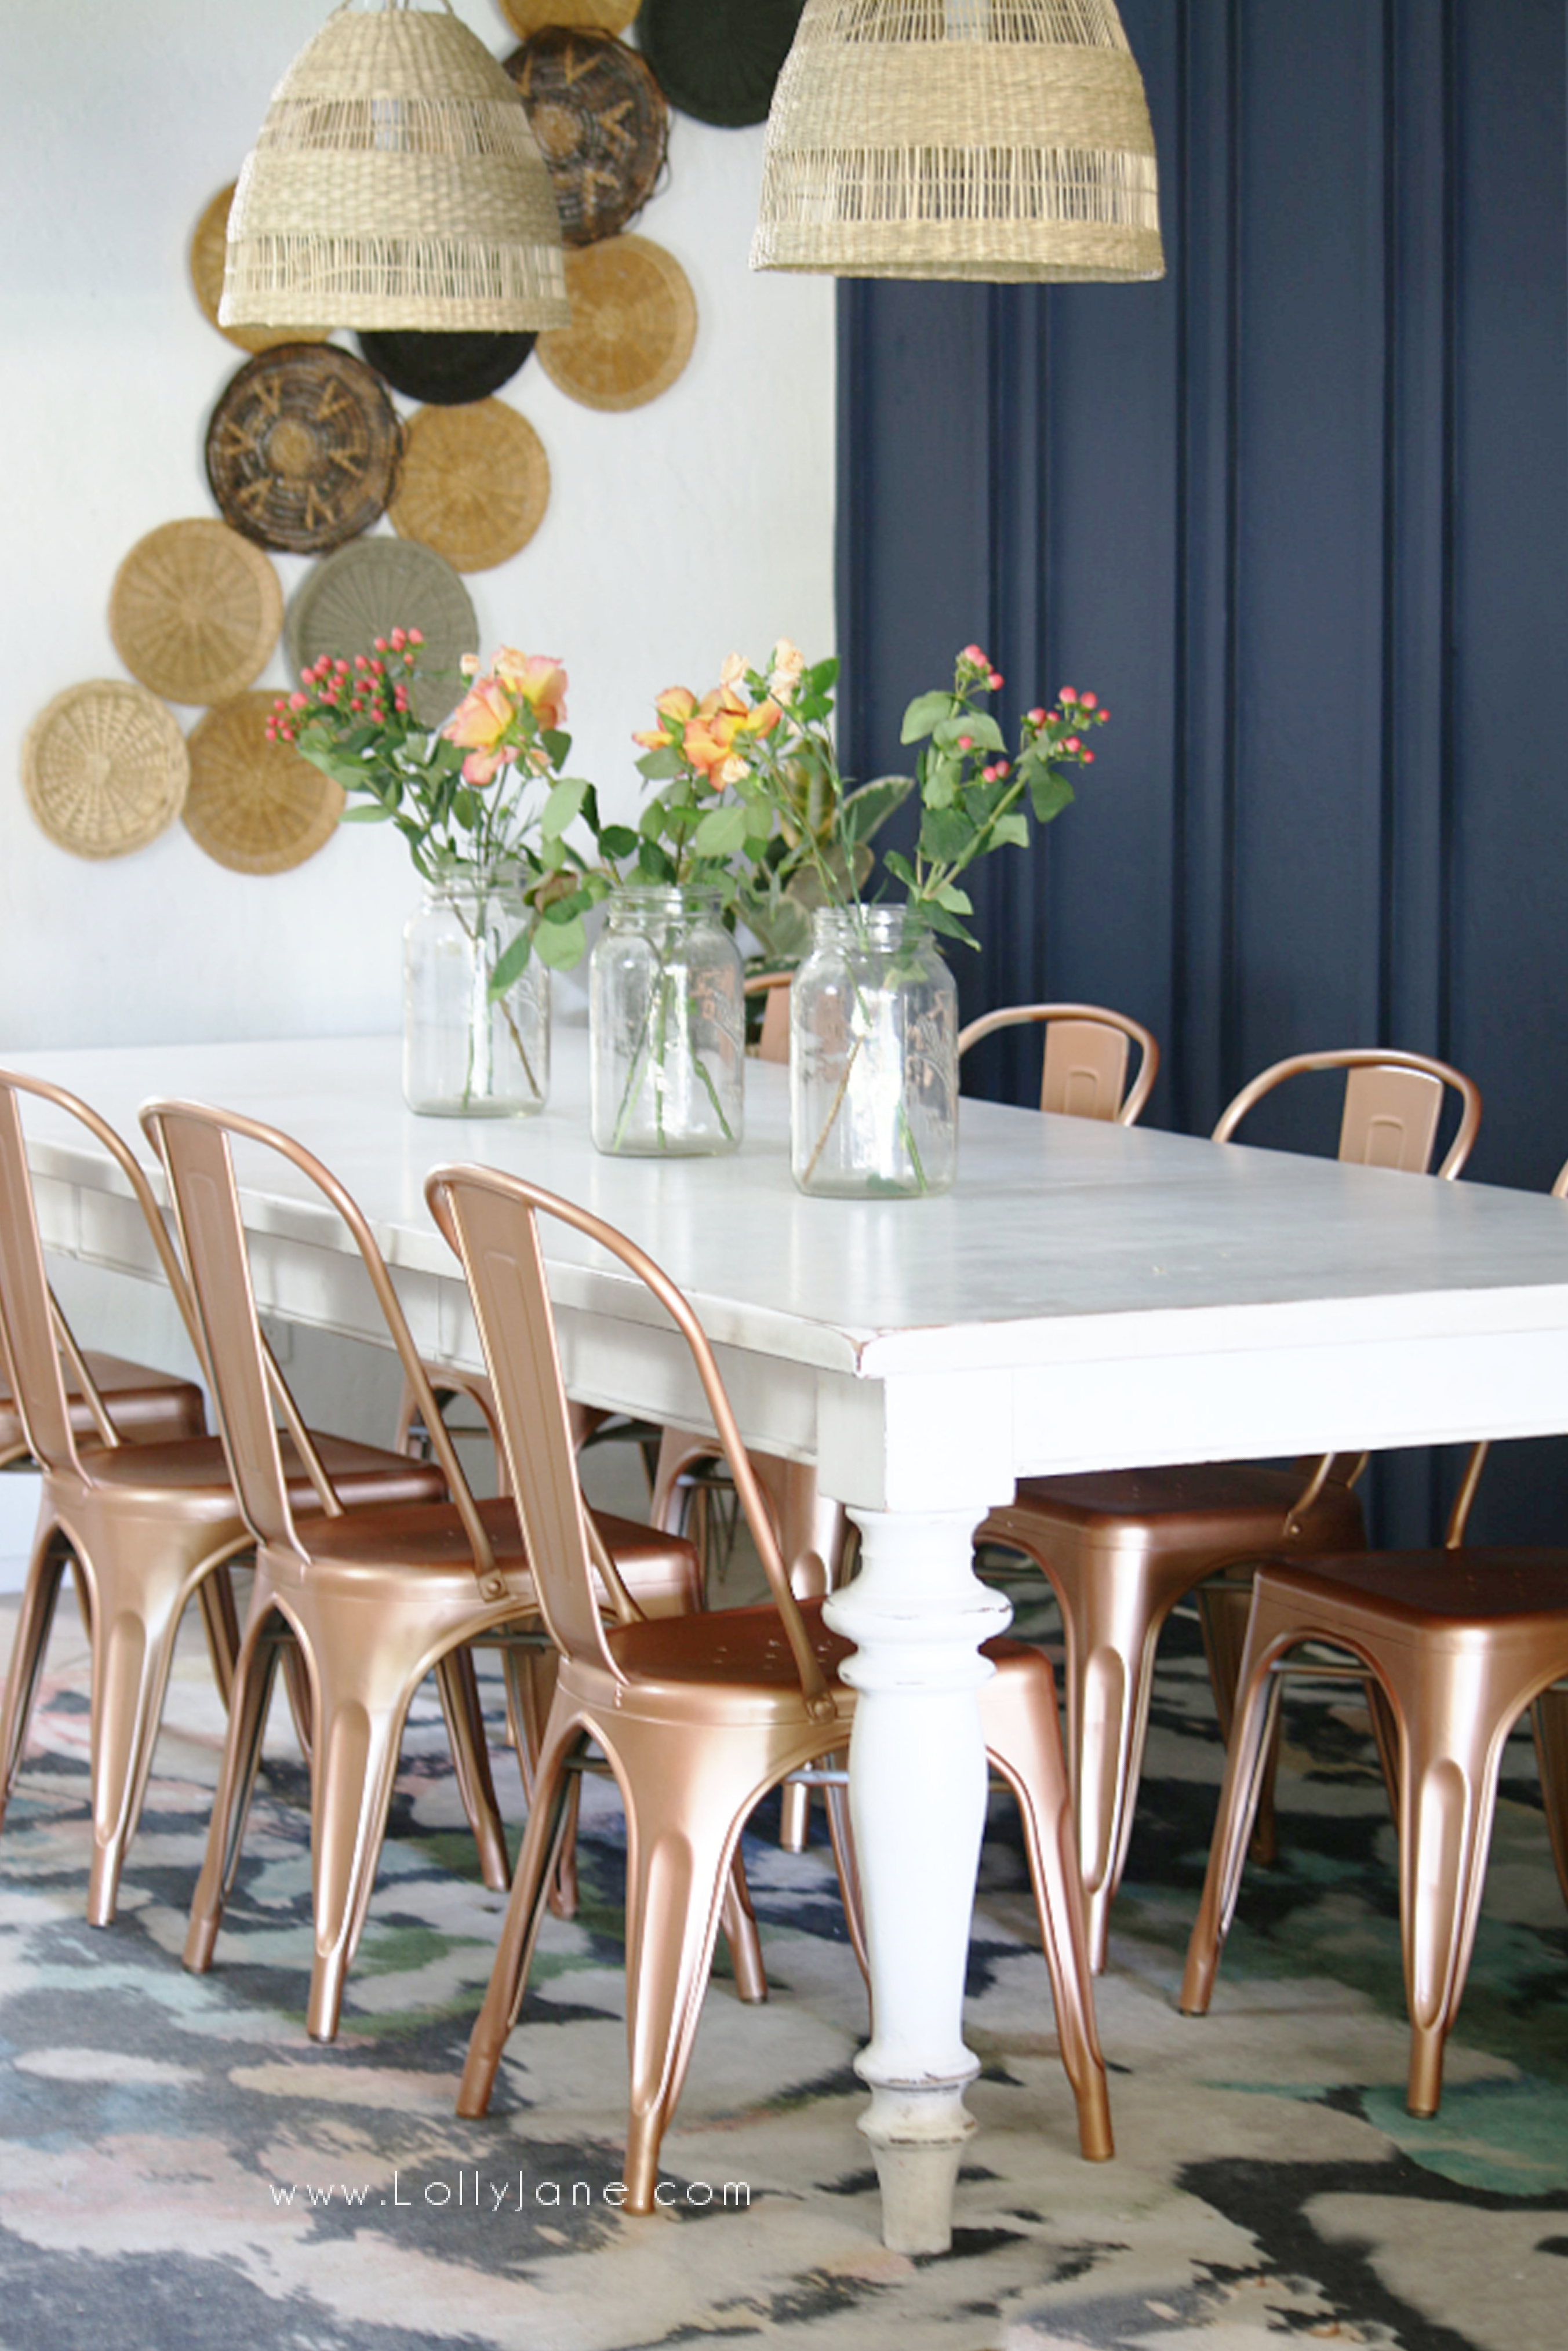 Boho style dining room decor! Check out this farmhouse to boho dining room makeover using a little paint for a big transformation! #diningroom #diningroommakeover #bohodiningroom #bohostyle #bohofarmhouse #bohofarmhousedecor